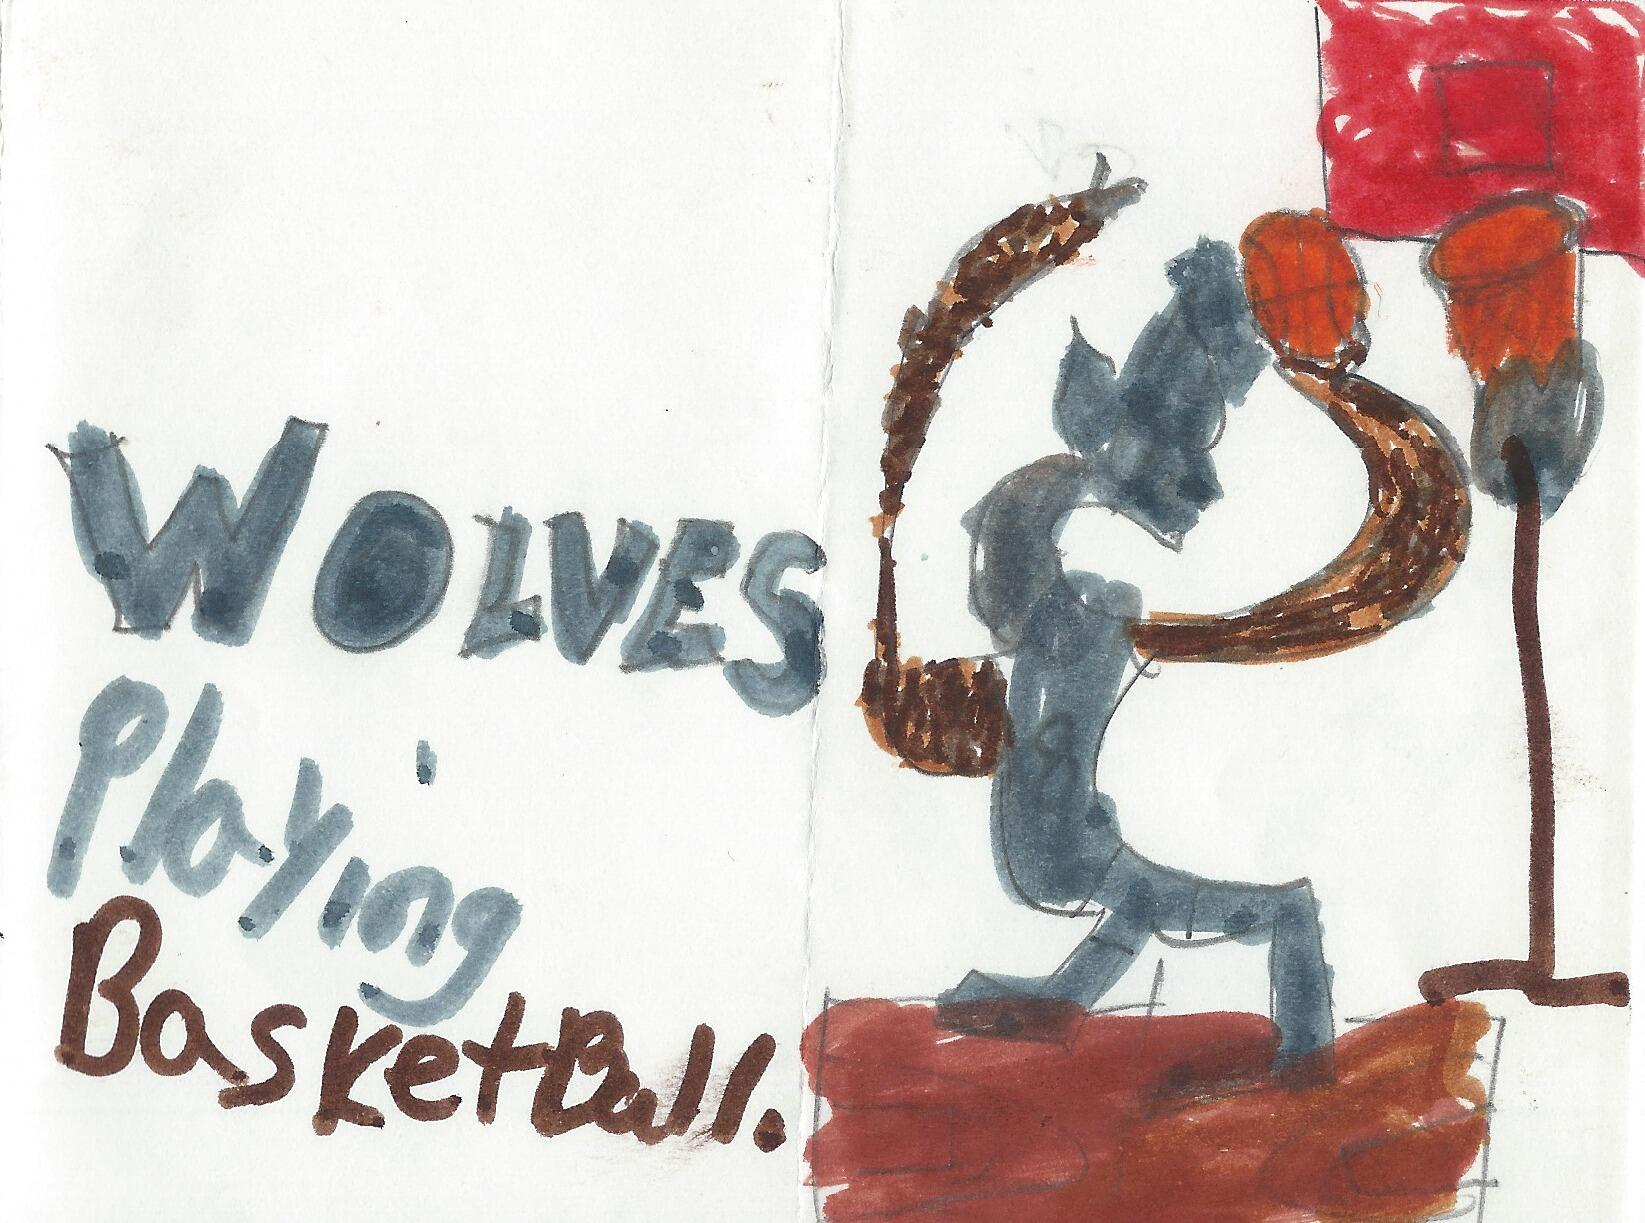 Wolves playing basketball by Teonne, age 8 #StudentWork http://t.co/scLNPBVd34